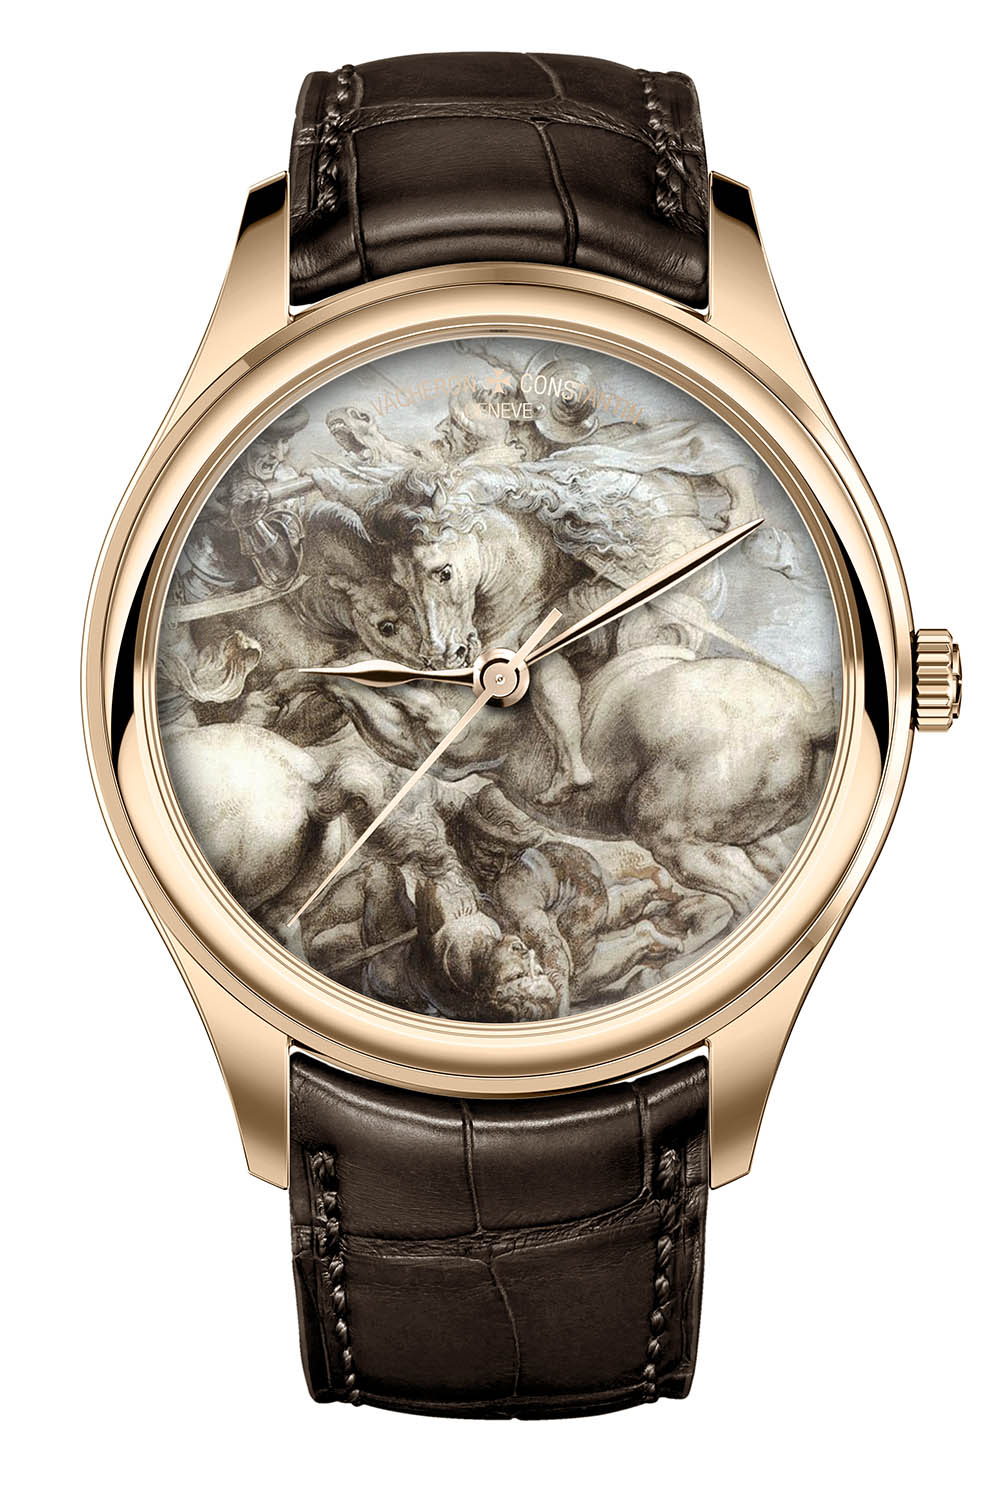 Bespoke Vacheron Constantin up for auction at the Louvre Museum - 4